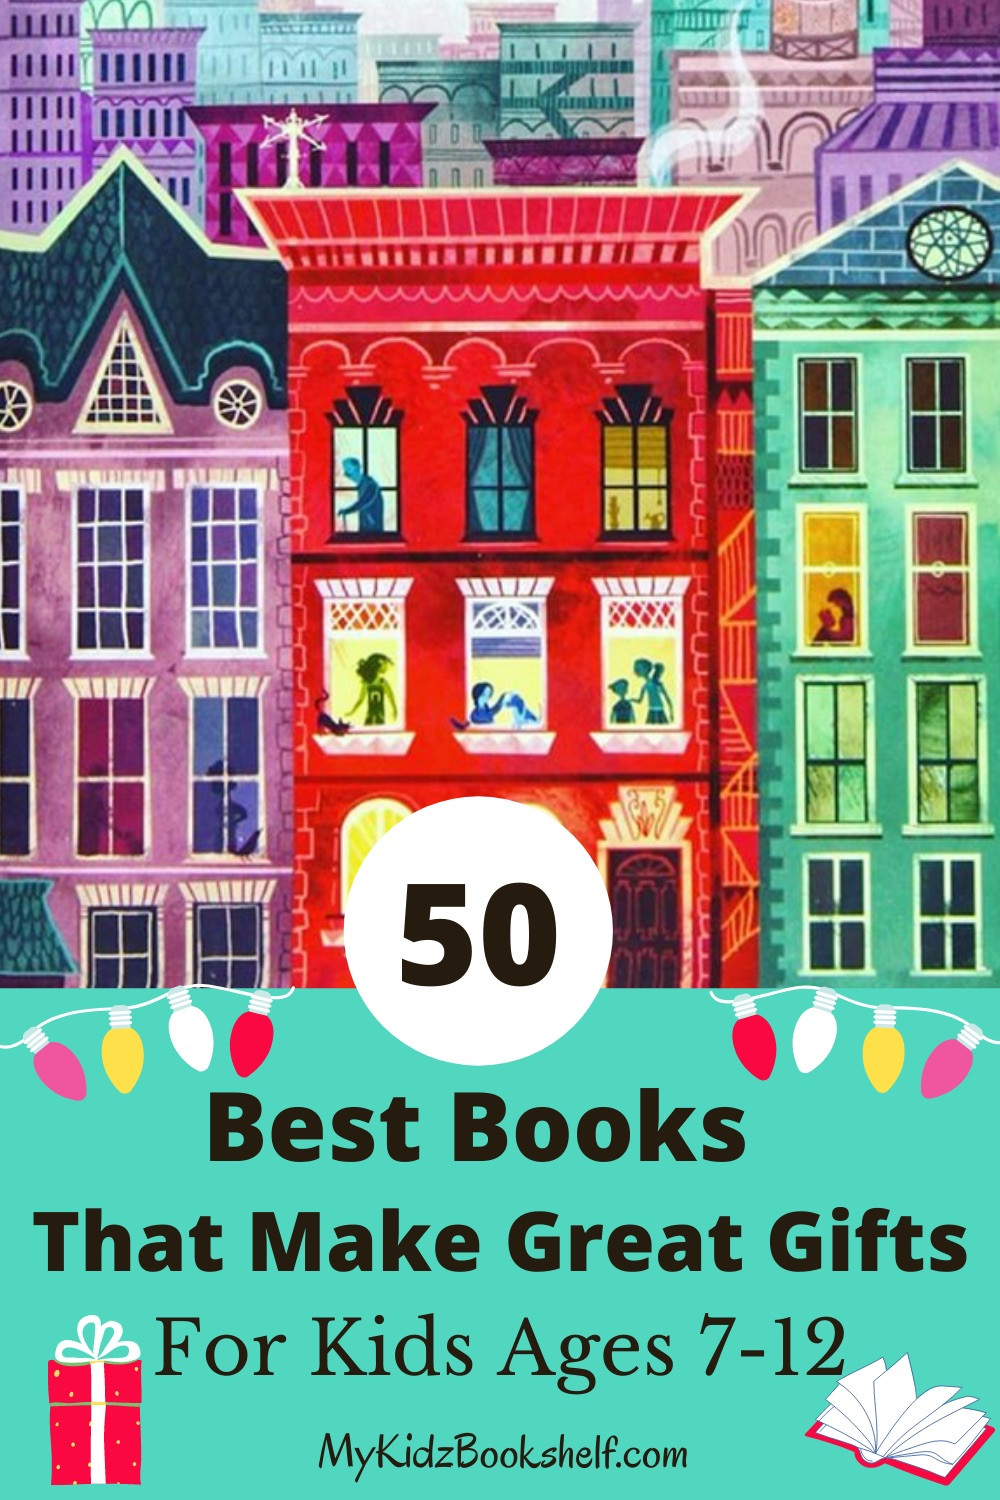 50 Best Books That Make Great Gifts for Kids Ages 7-12